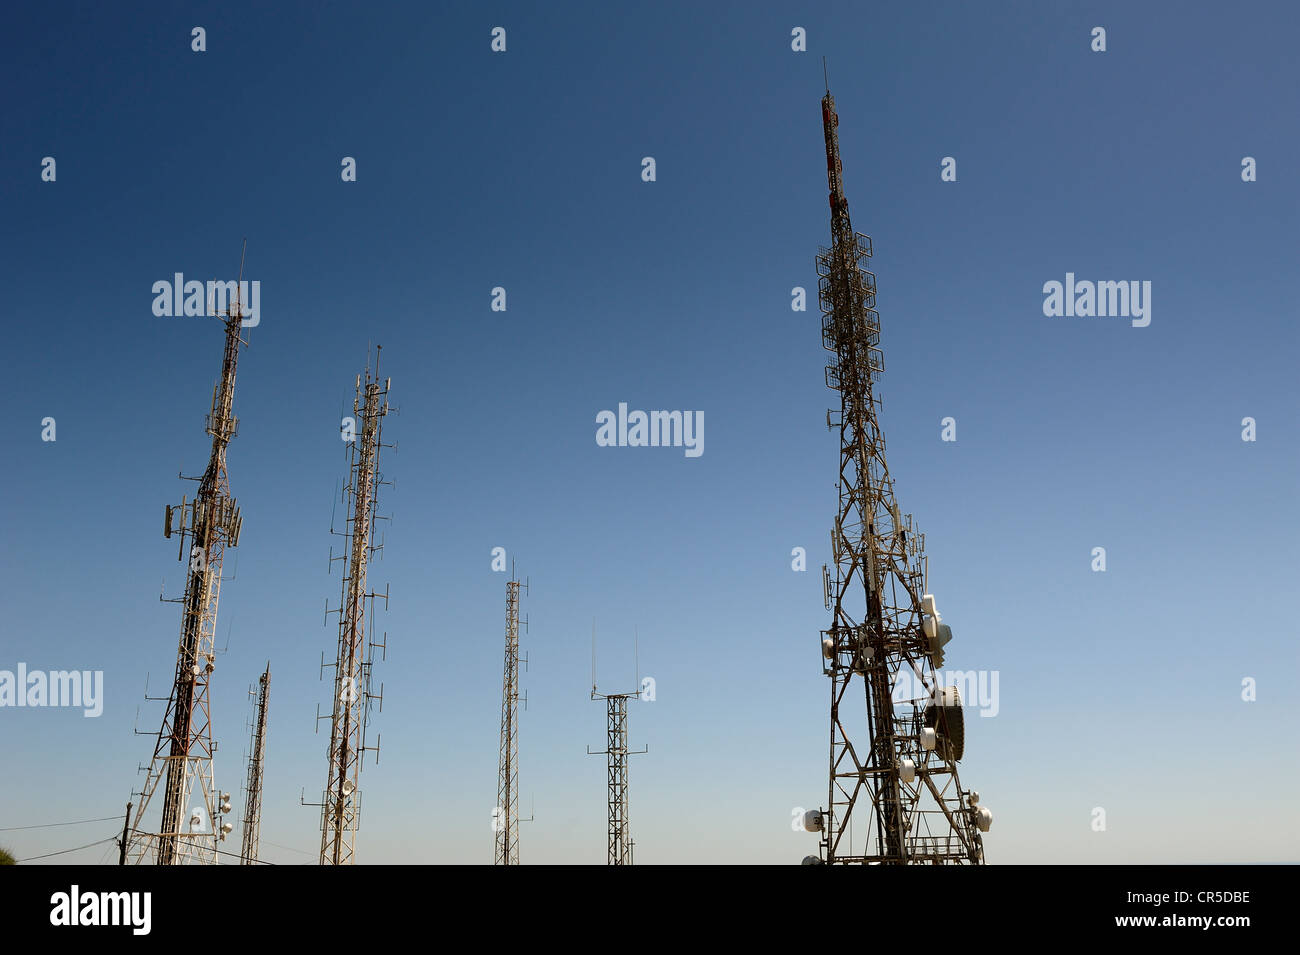 satellite radio television and communication masts on top of monte toro the highest point in menorca spain Stock Photo